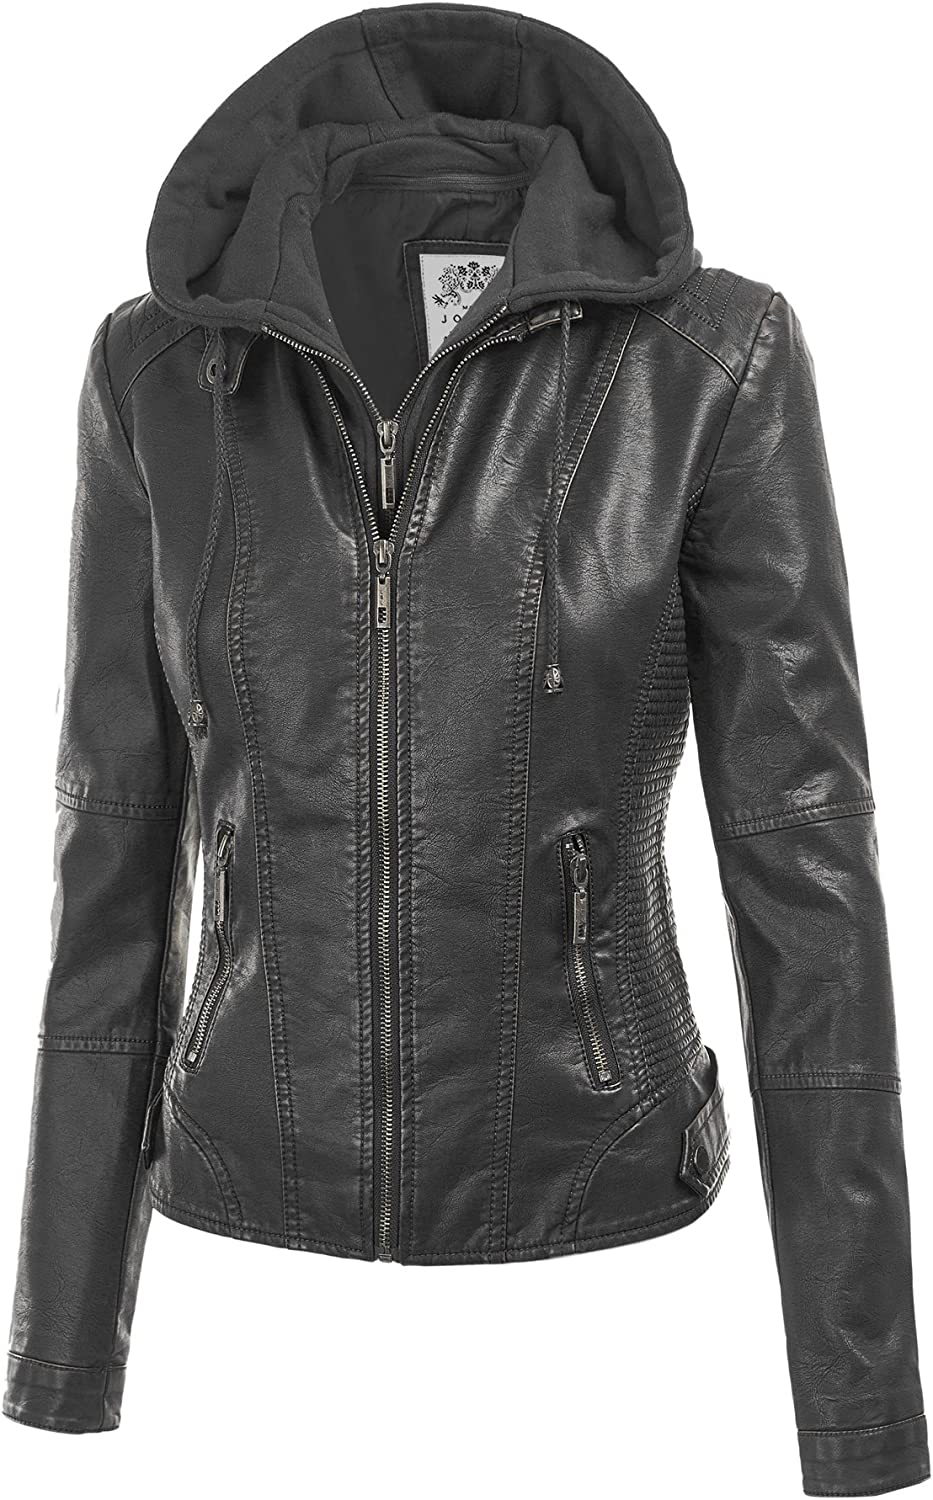 Made By Johnny WJC1044 Womens Faux Leather Quilted Motorcycle Jacket with Hoodie M Black